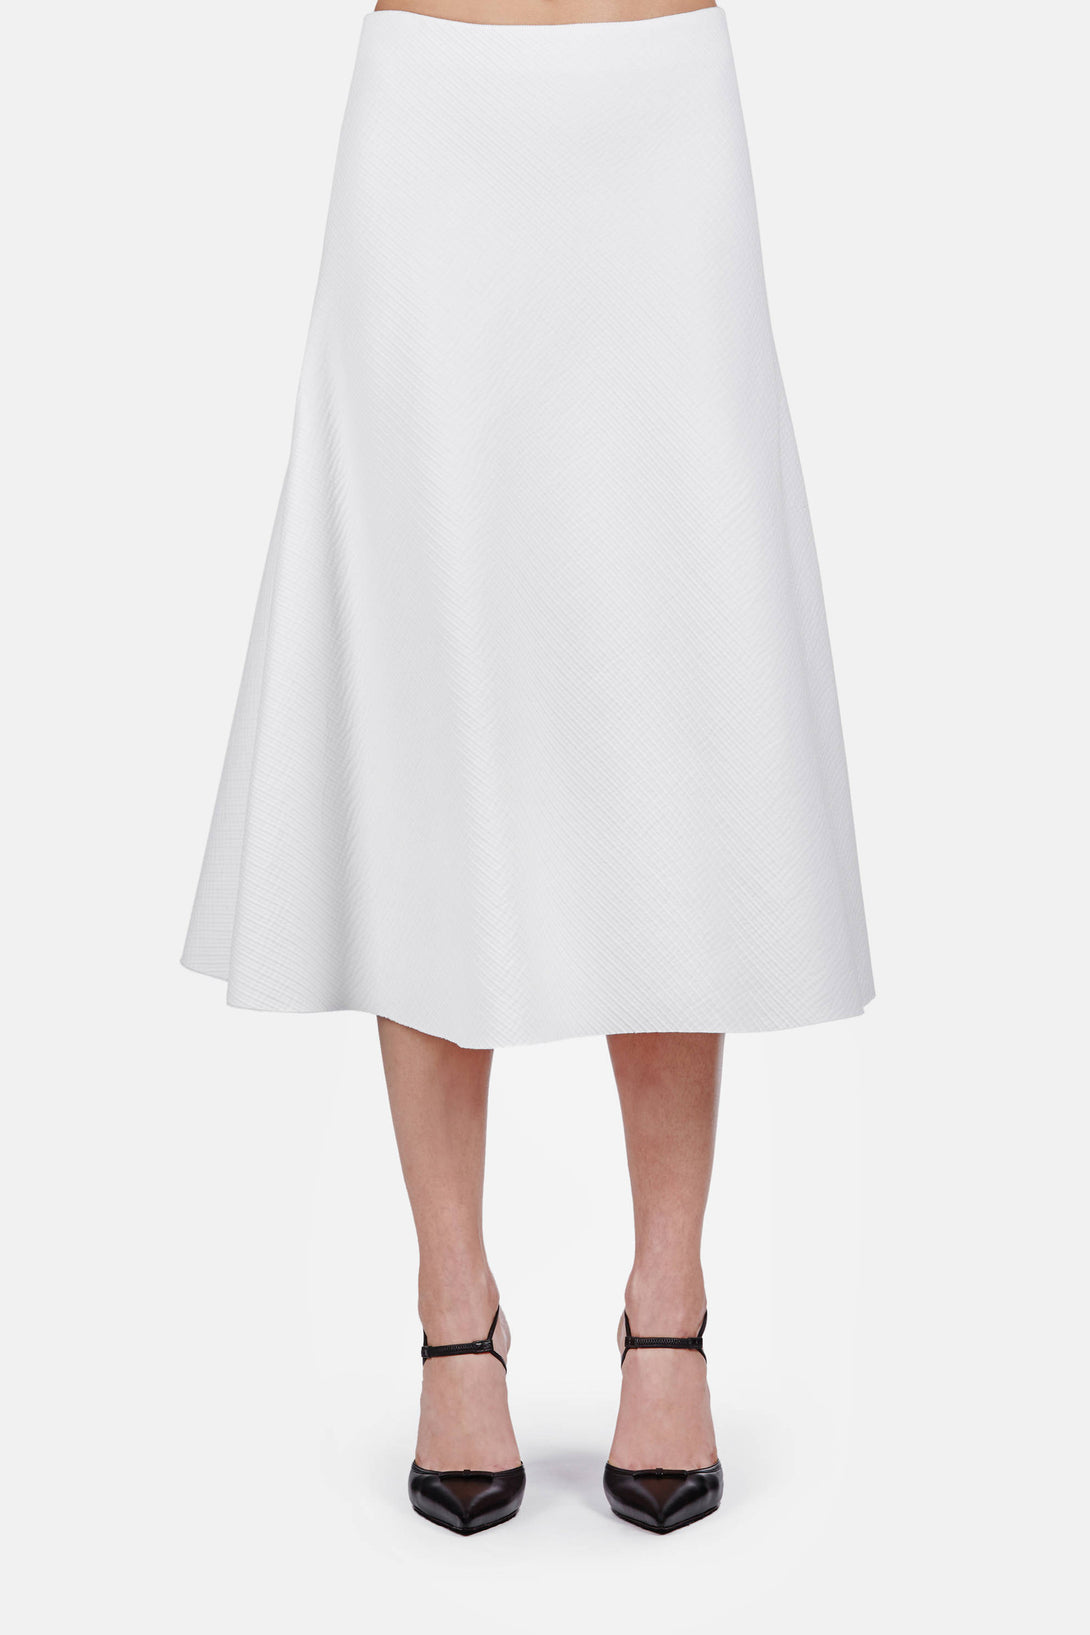 Skirt 08 Flare Skirt - Optic White